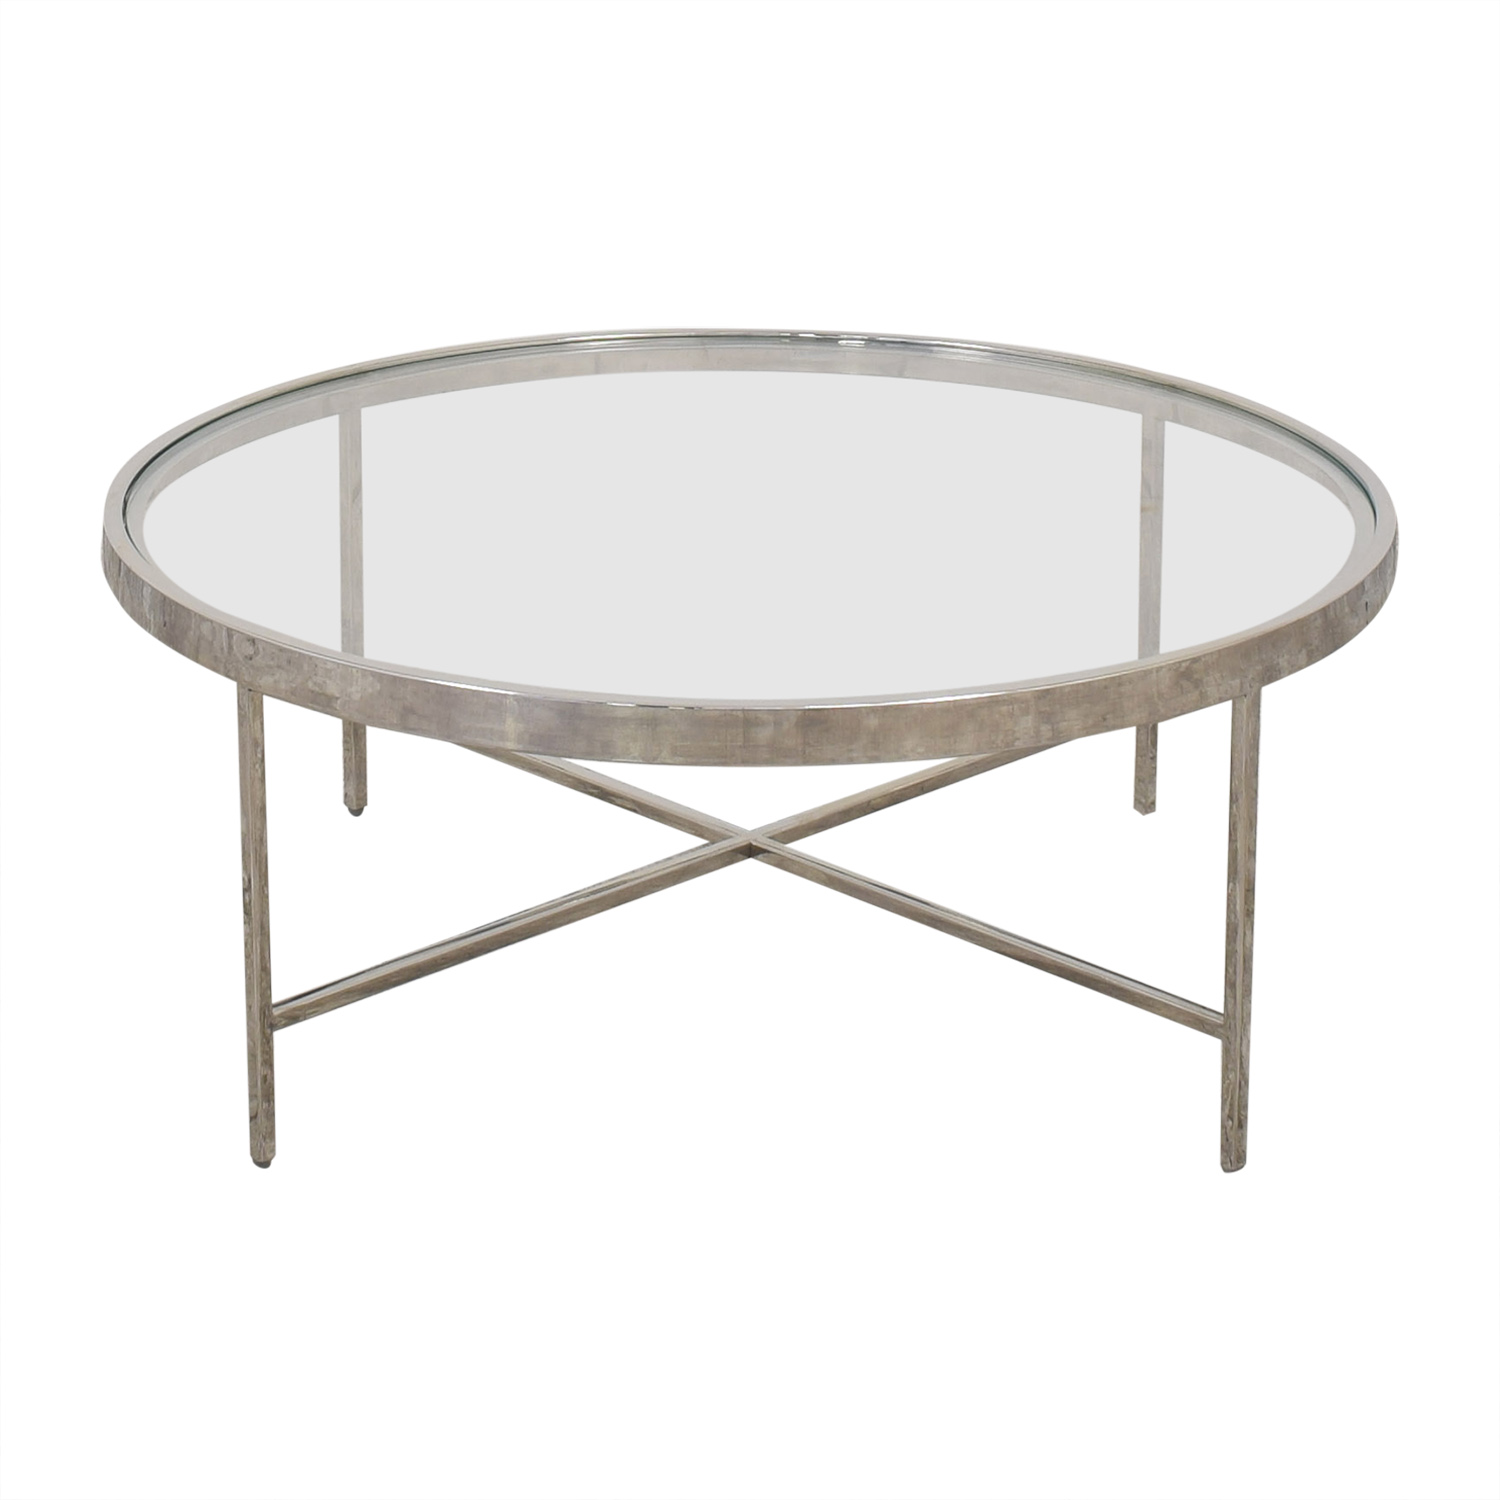 Mitchell Gold + Bob Williams Mitchell Gold + Bob Williams Vienna Round Cocktail Table discount